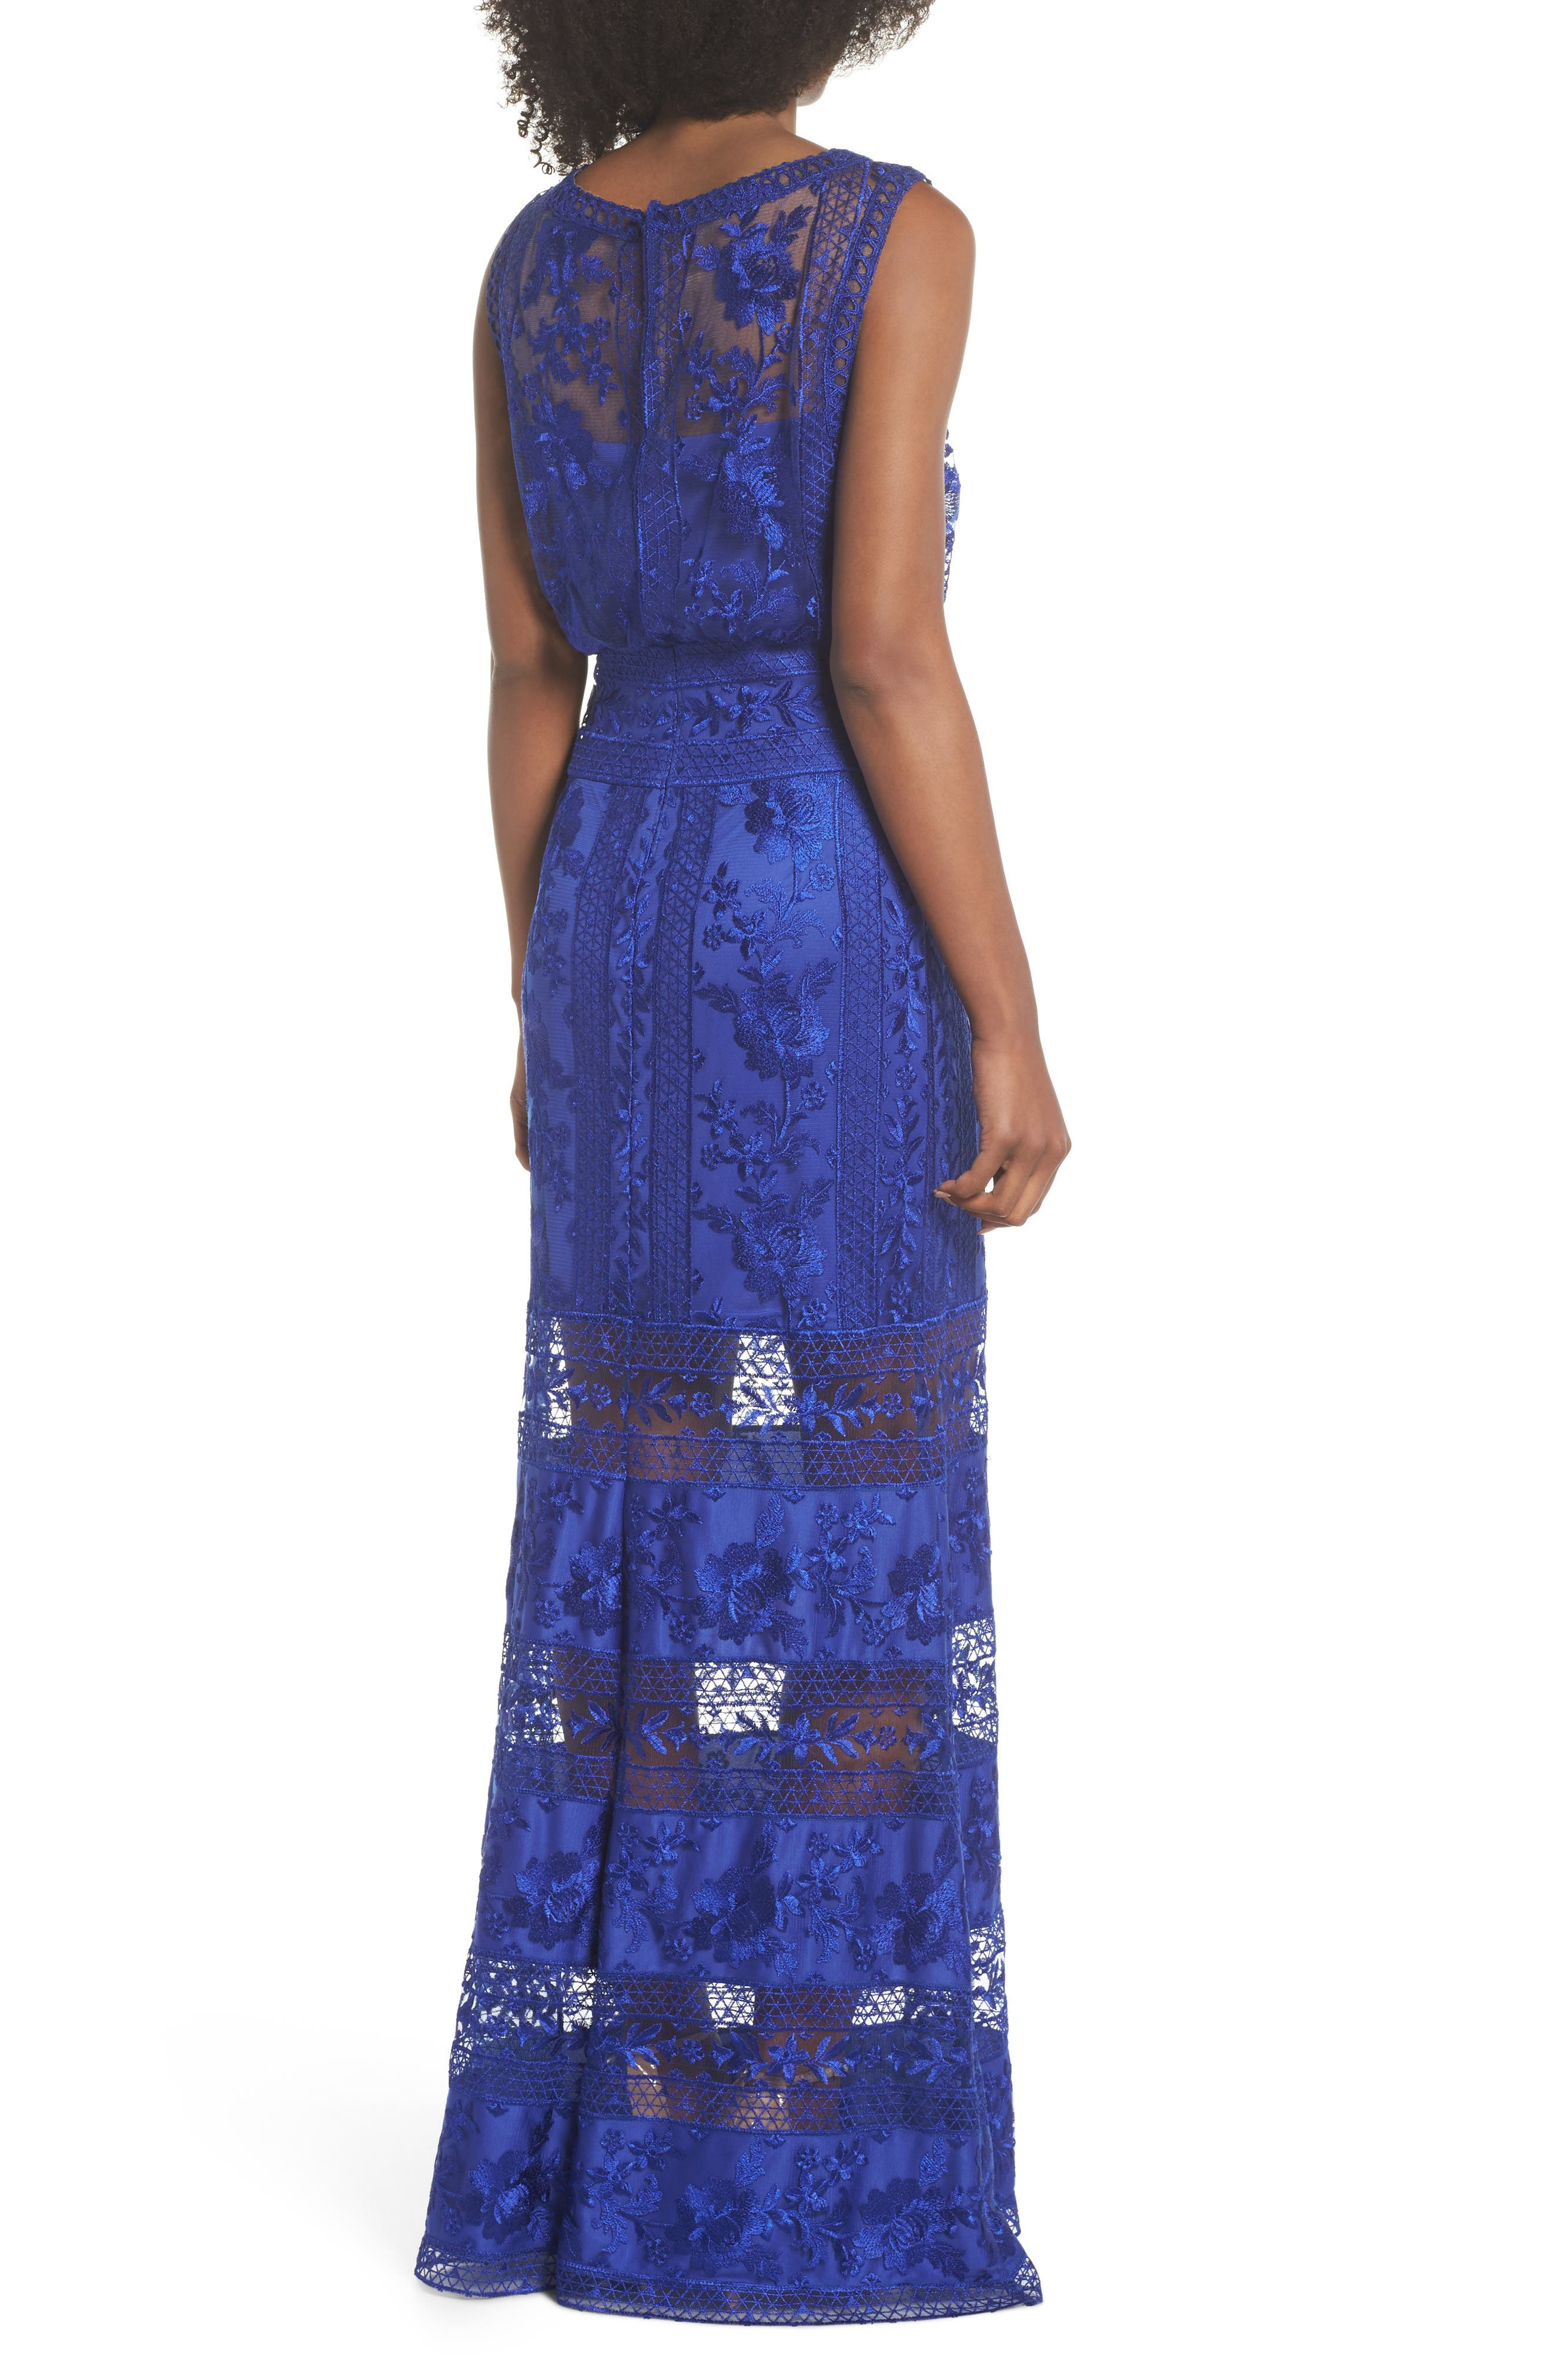 Kaisra Embroidered Lace Gown,                             Alternate thumbnail 2, color,                             400